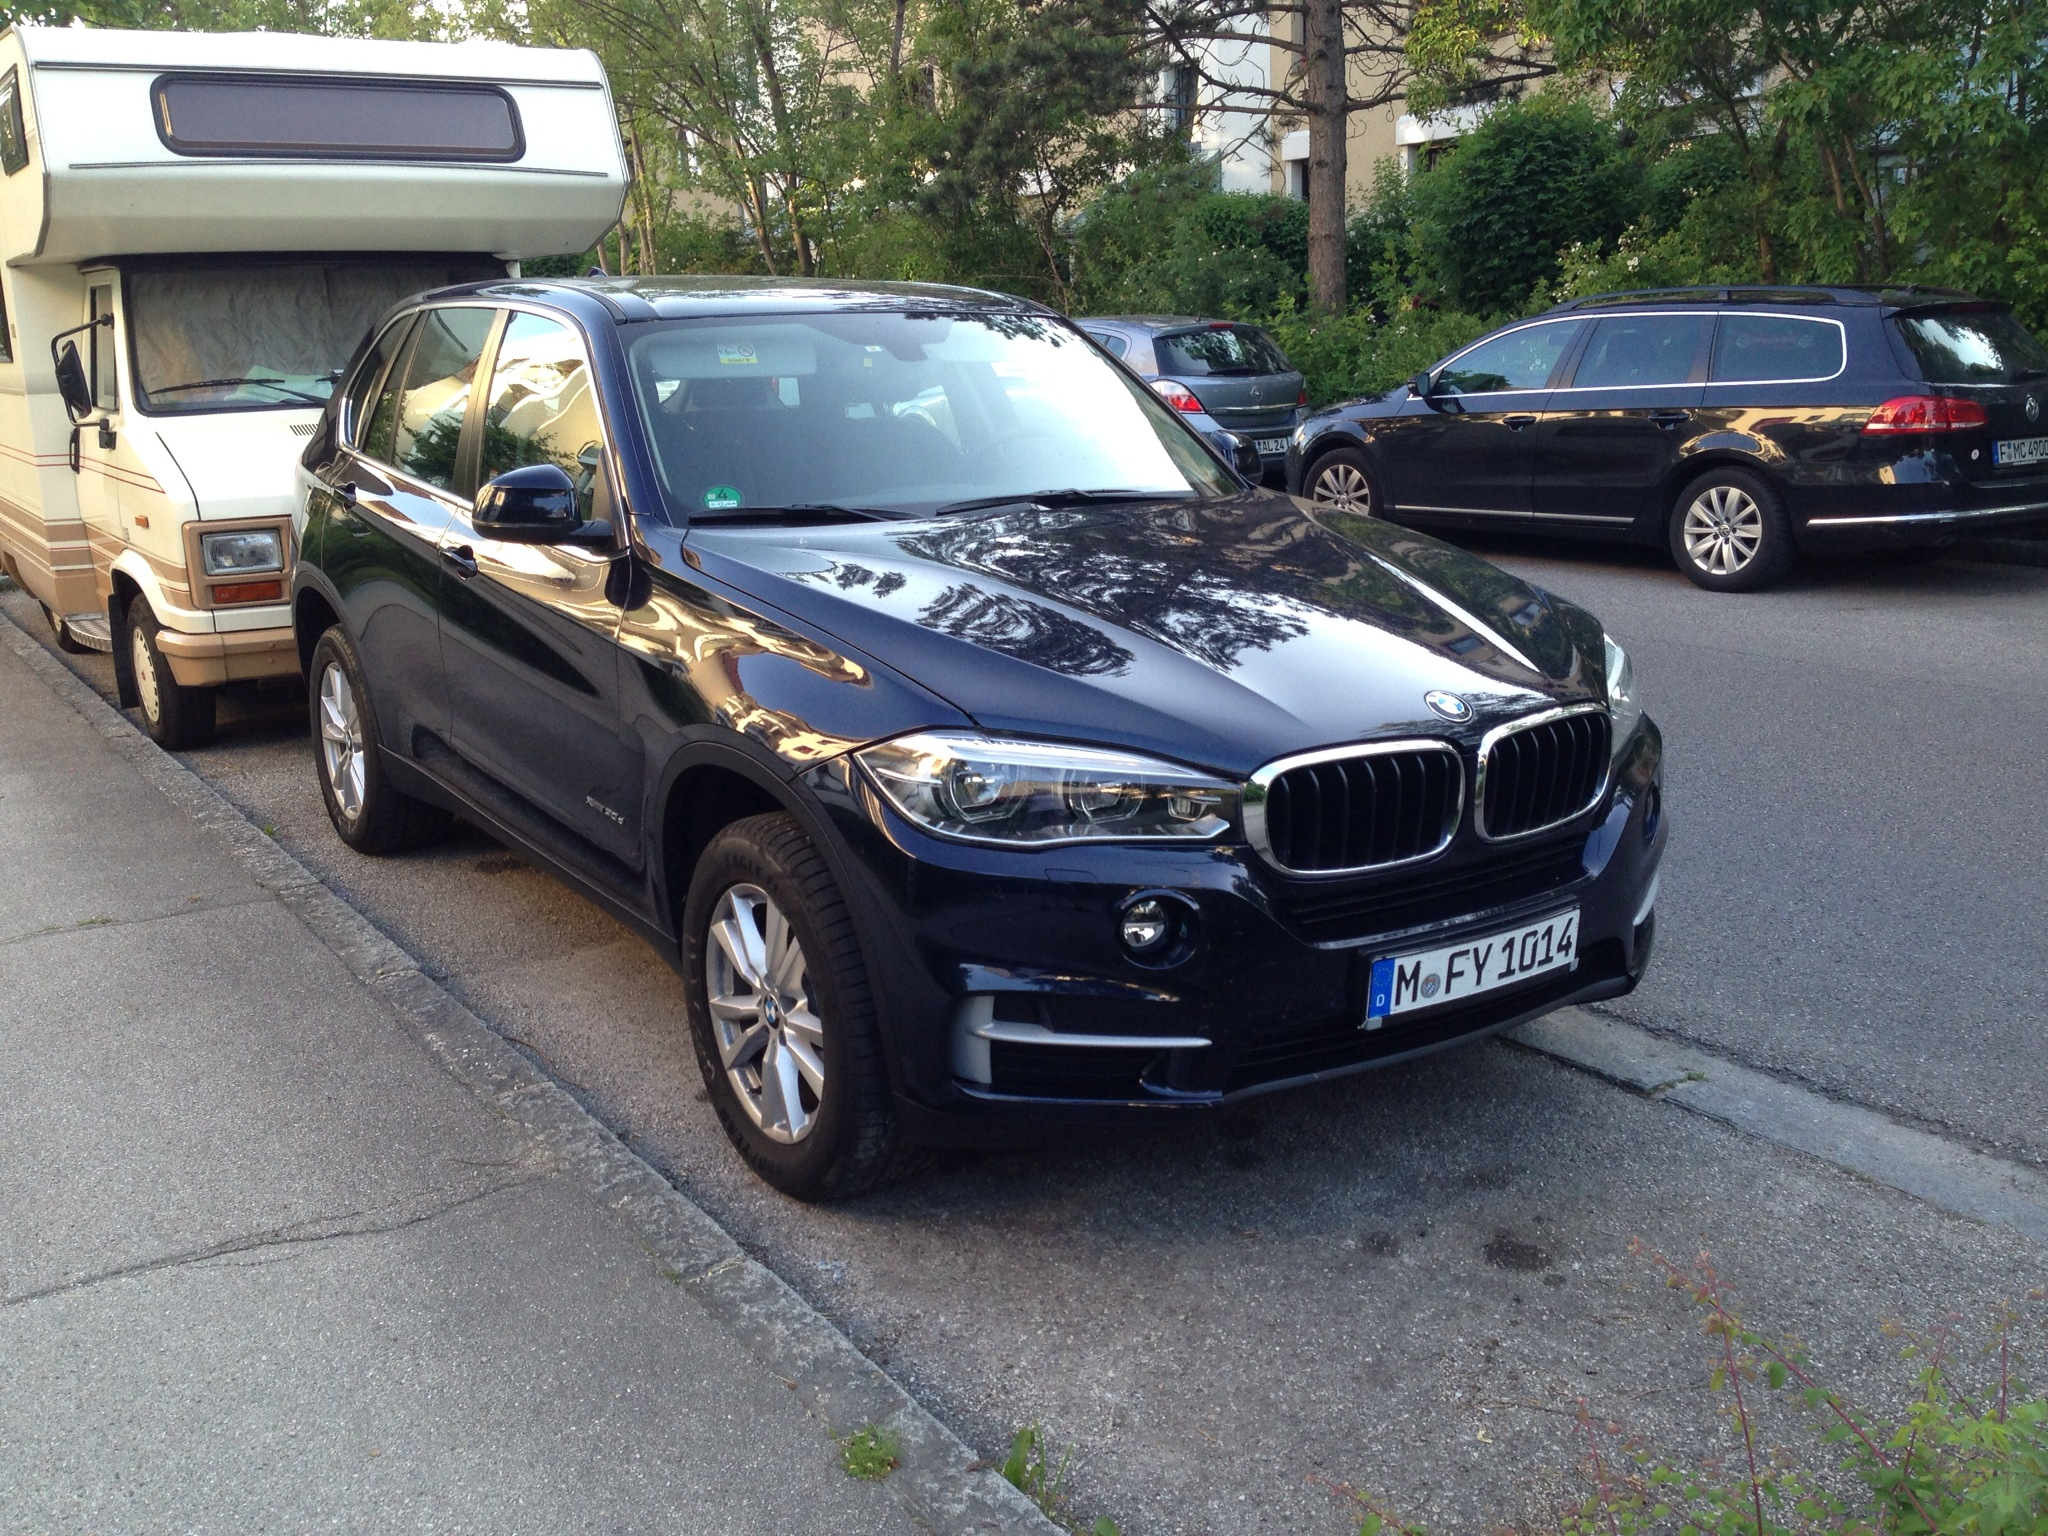 2014 Bmw X5 Spotted In Germany Autoevolution